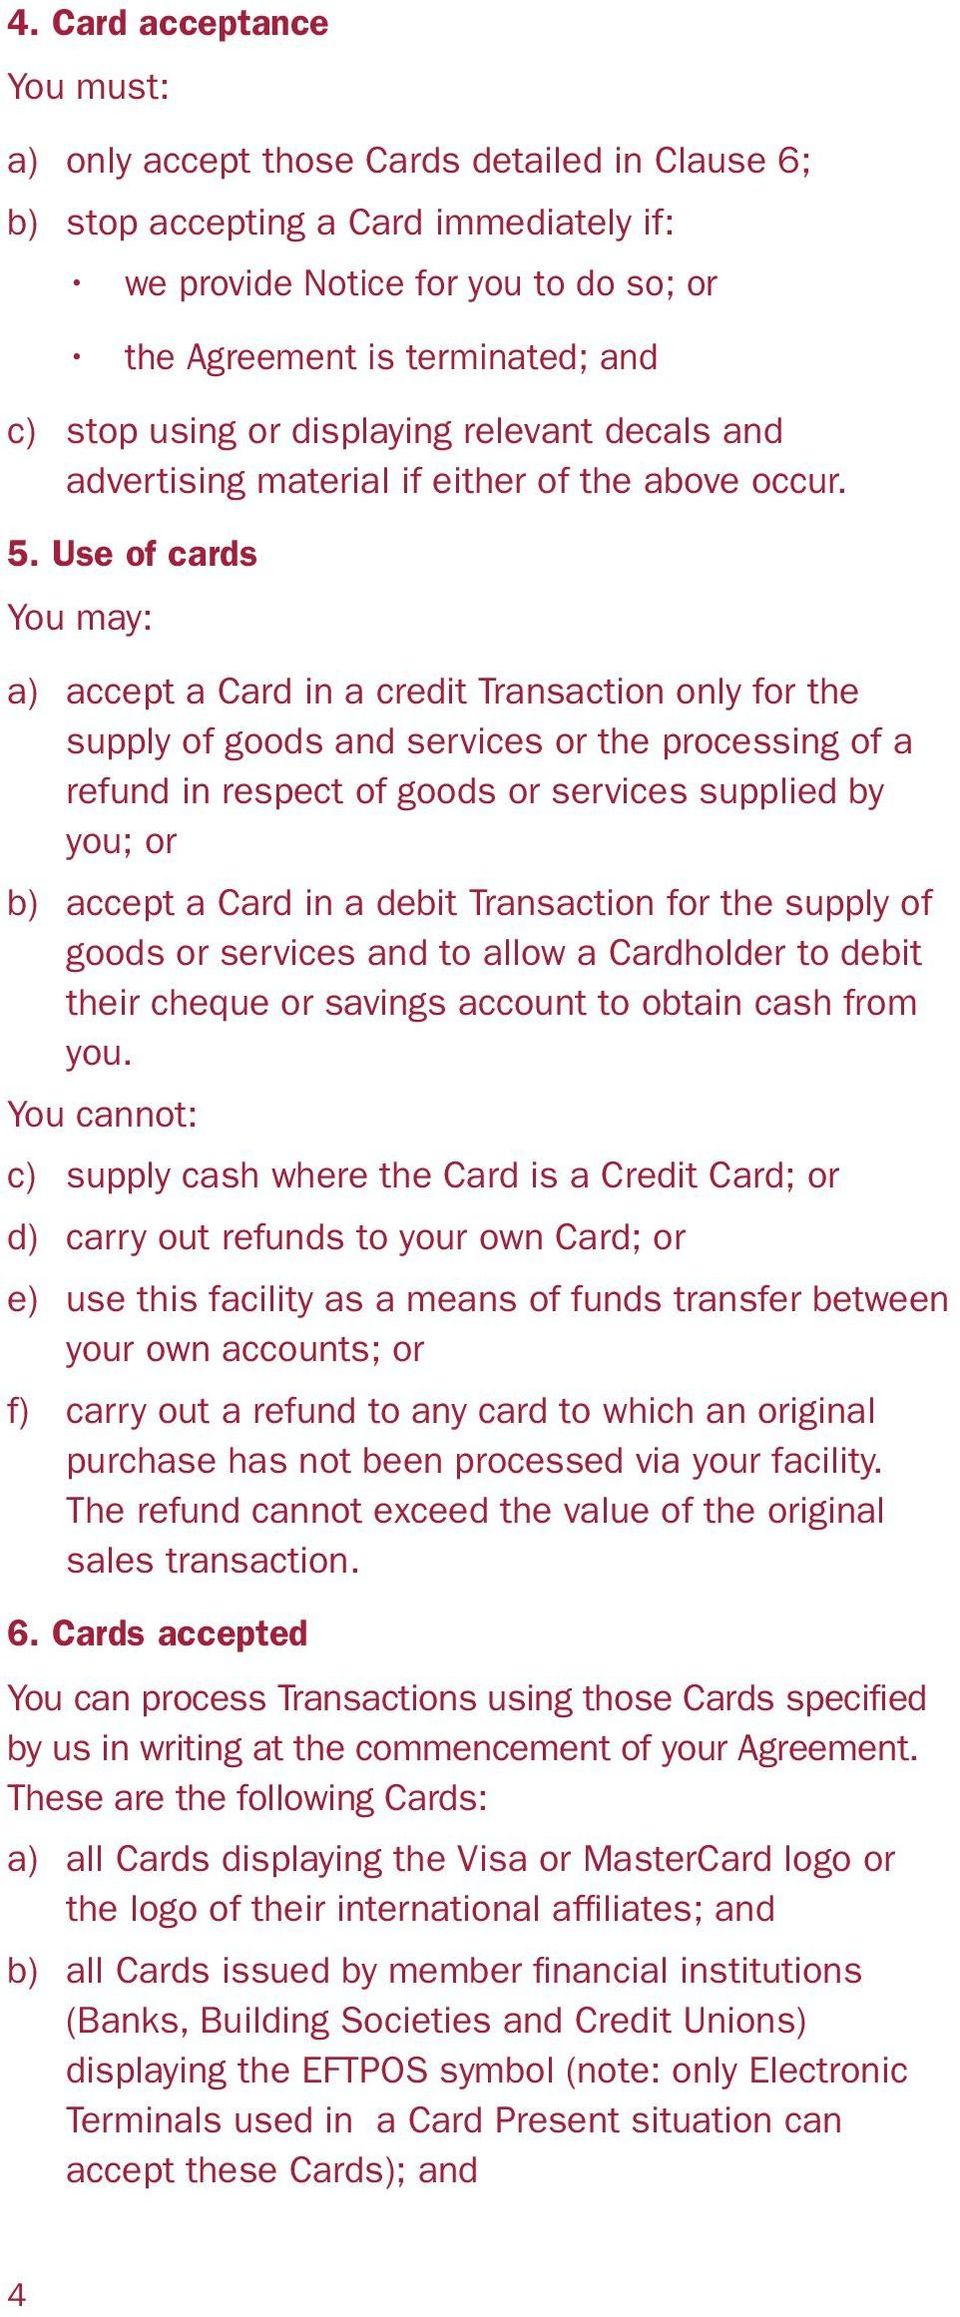 Use of cards You may: a) accept a Card in a credit Transaction only for the supply of goods and services or the processing of a refund in respect of goods or services supplied by you; or b) accept a